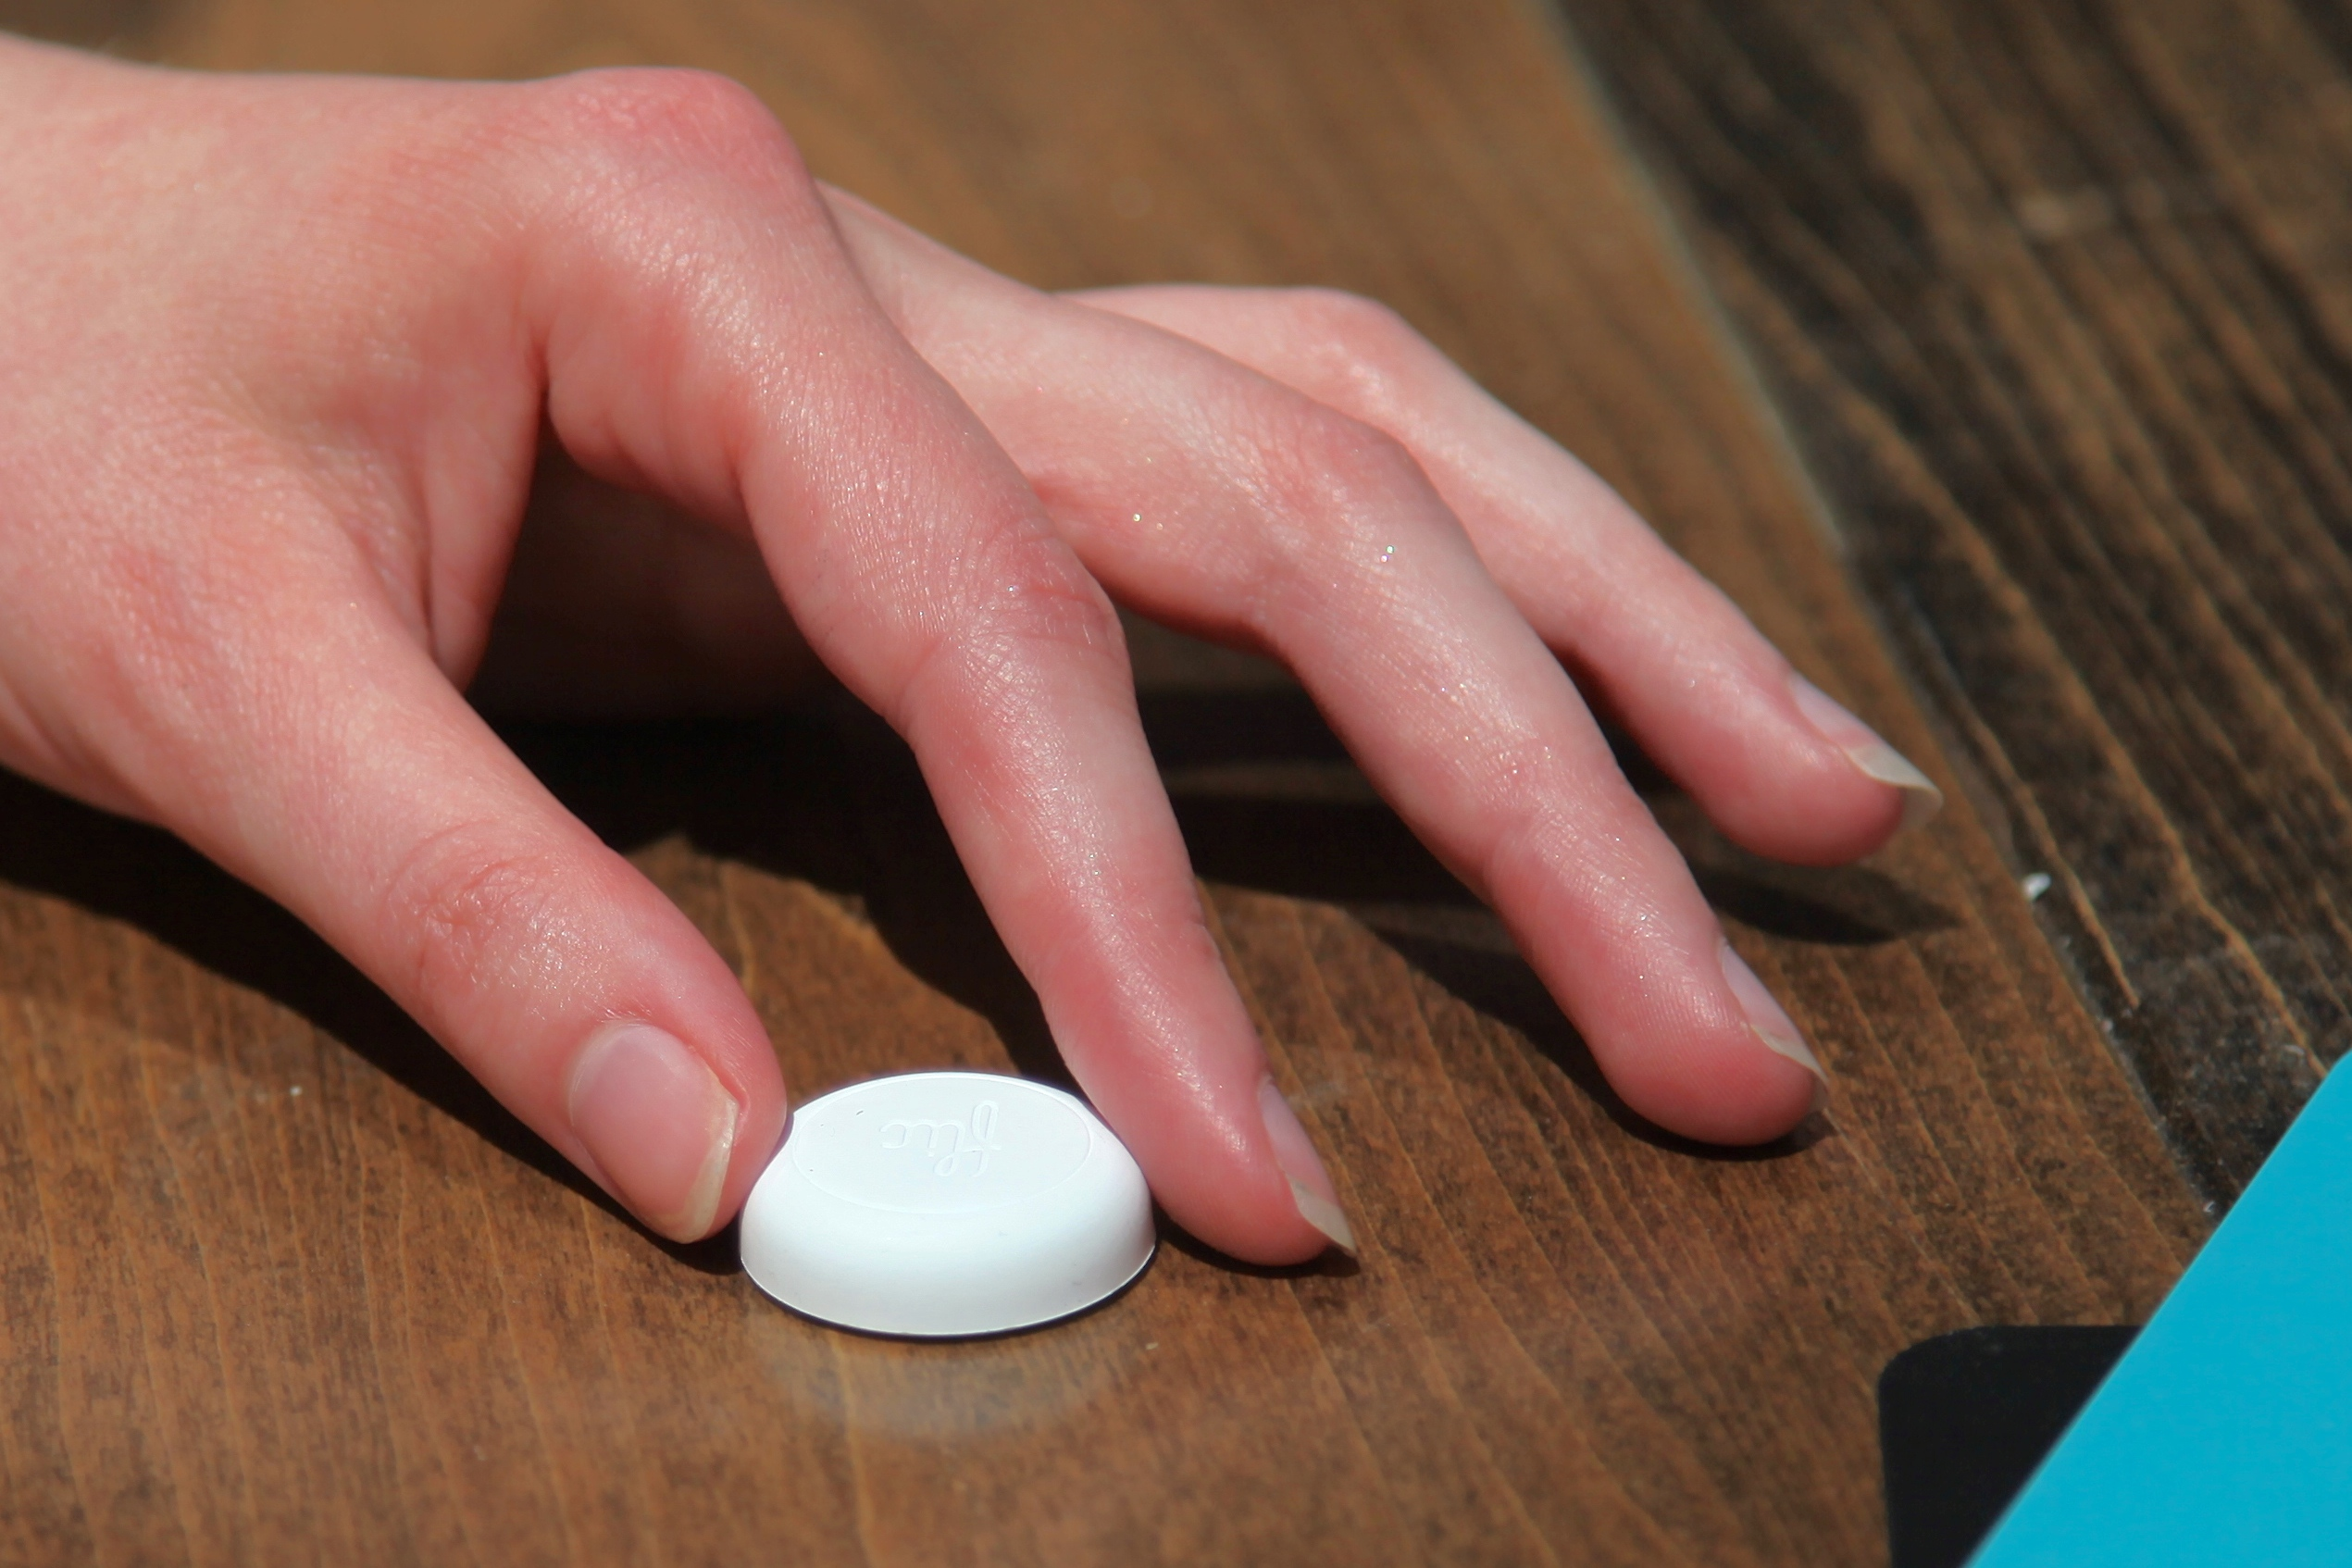 The Flic wireless button. Photo by Signe Brewster.